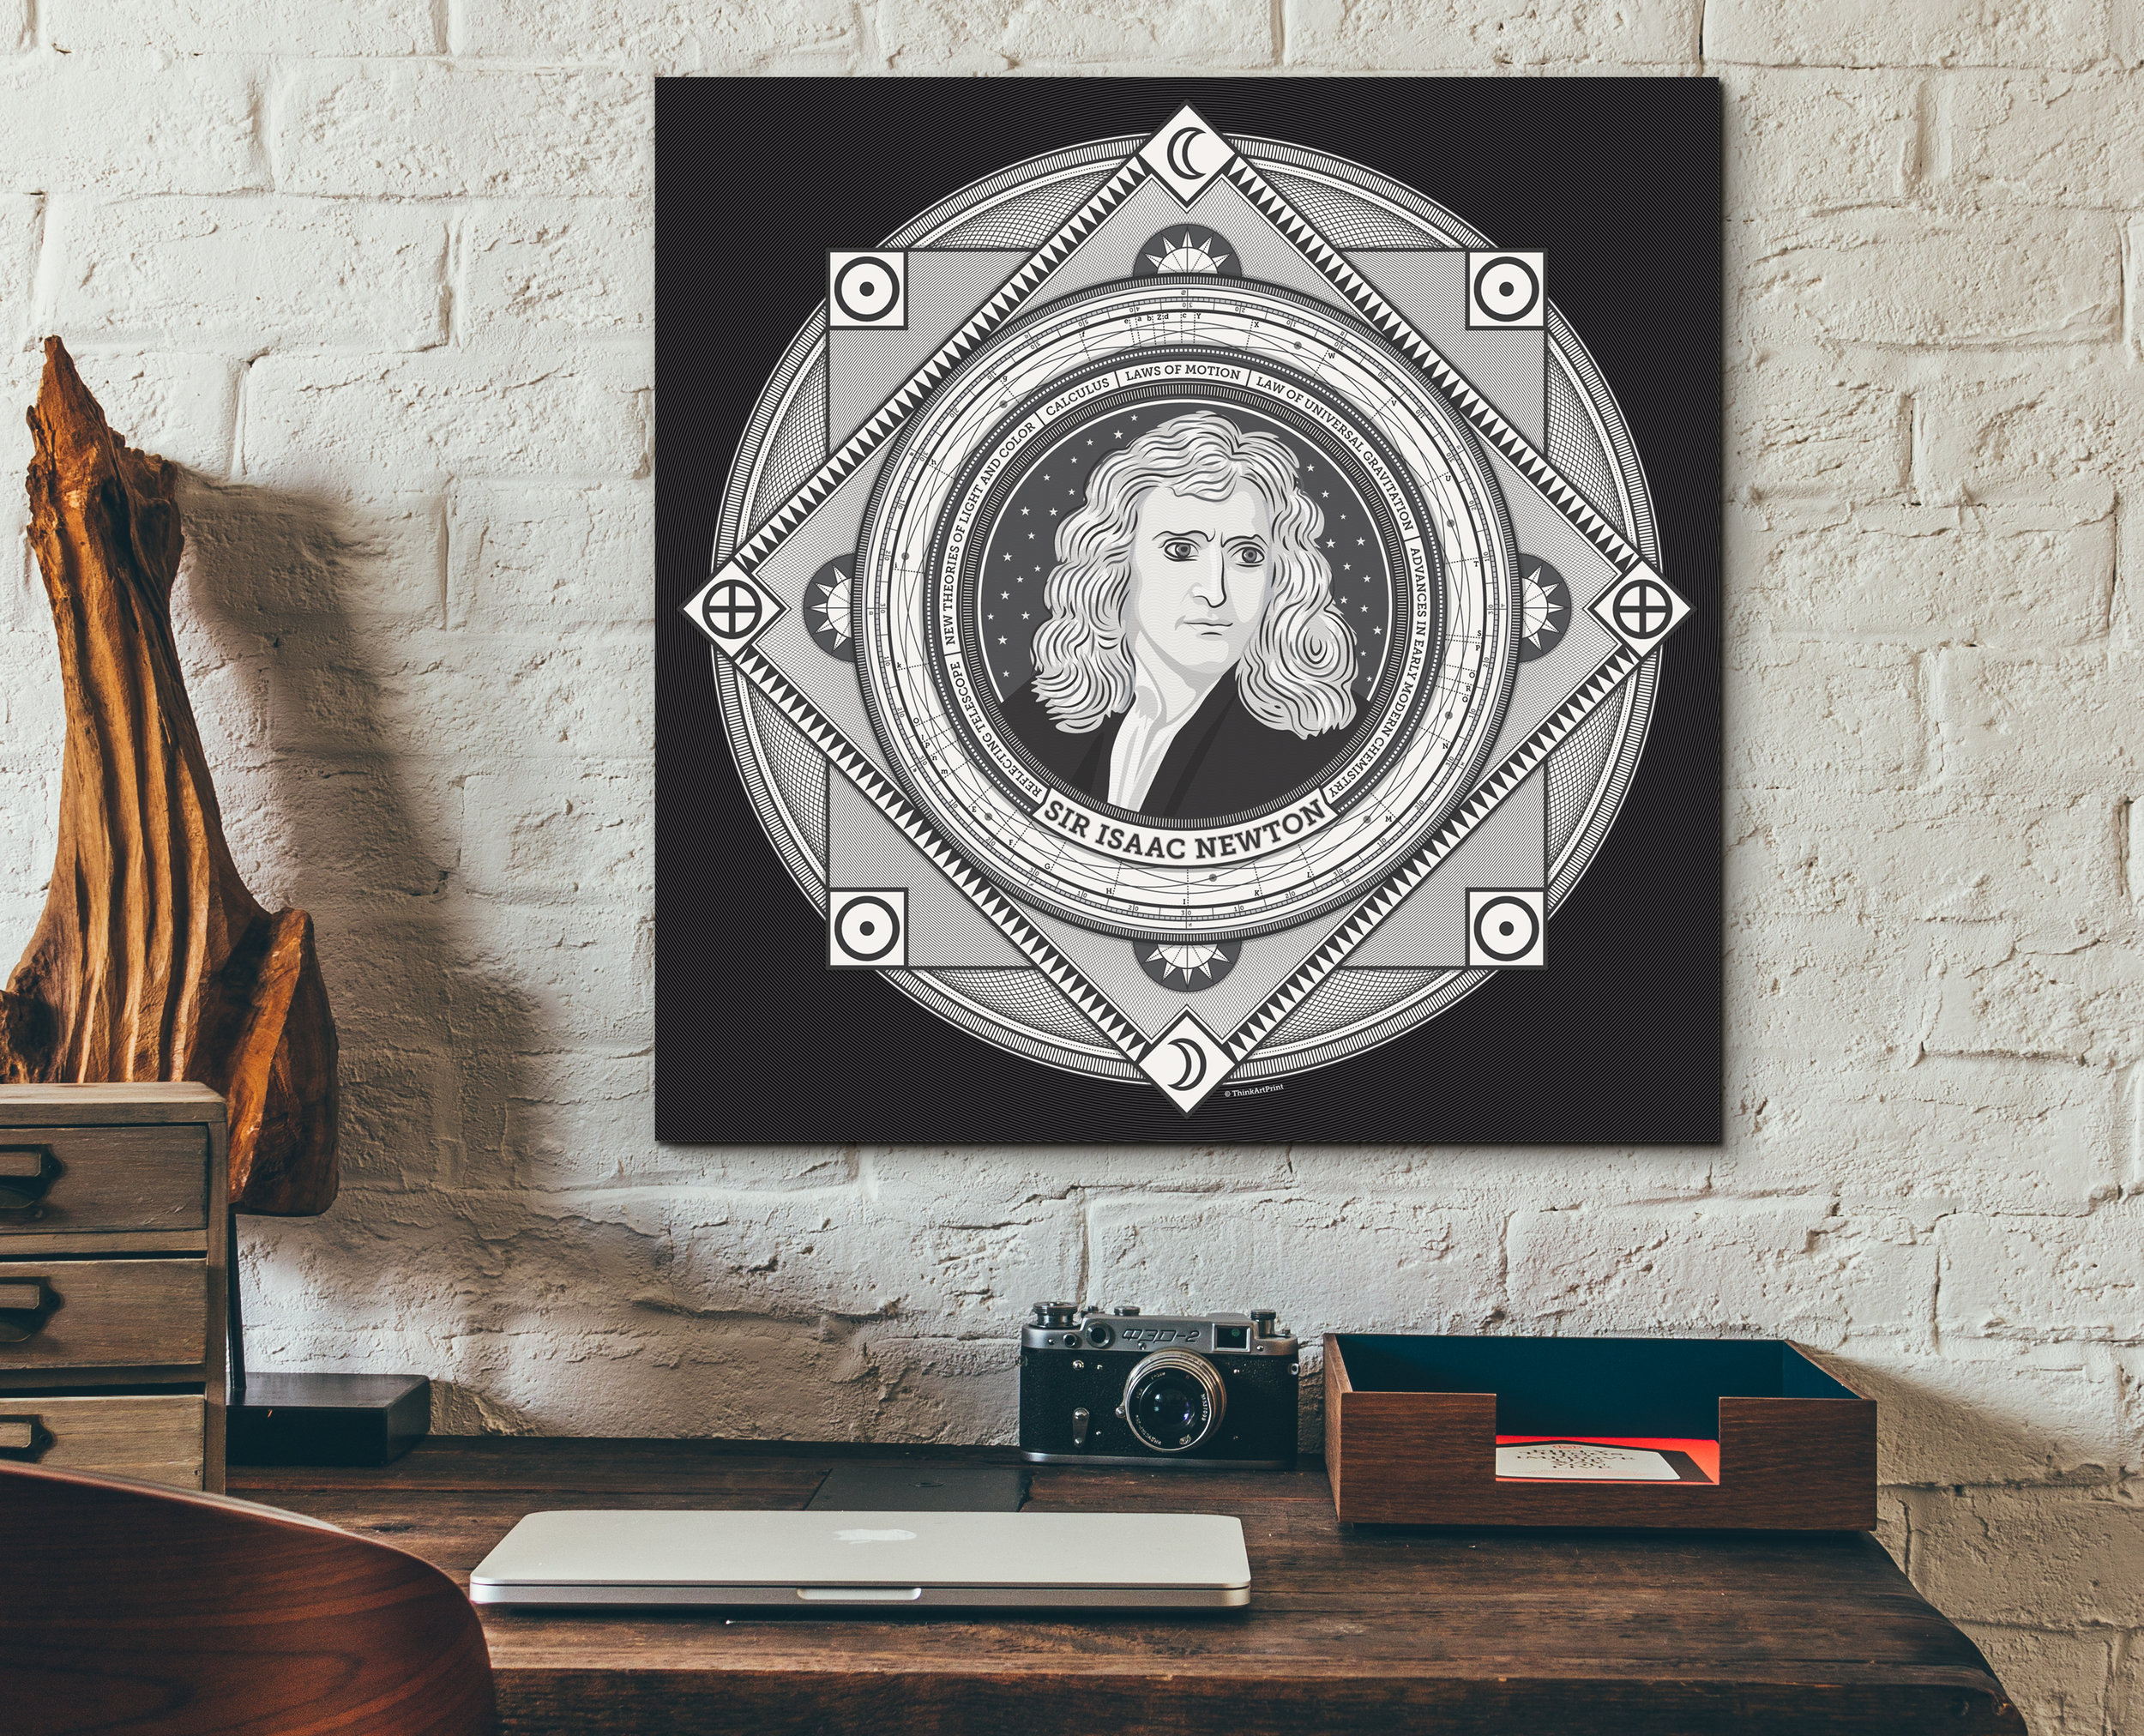 The latest iteration of my Sir Isaac Newton art print was completed in February 2017. Click image to enlarge.